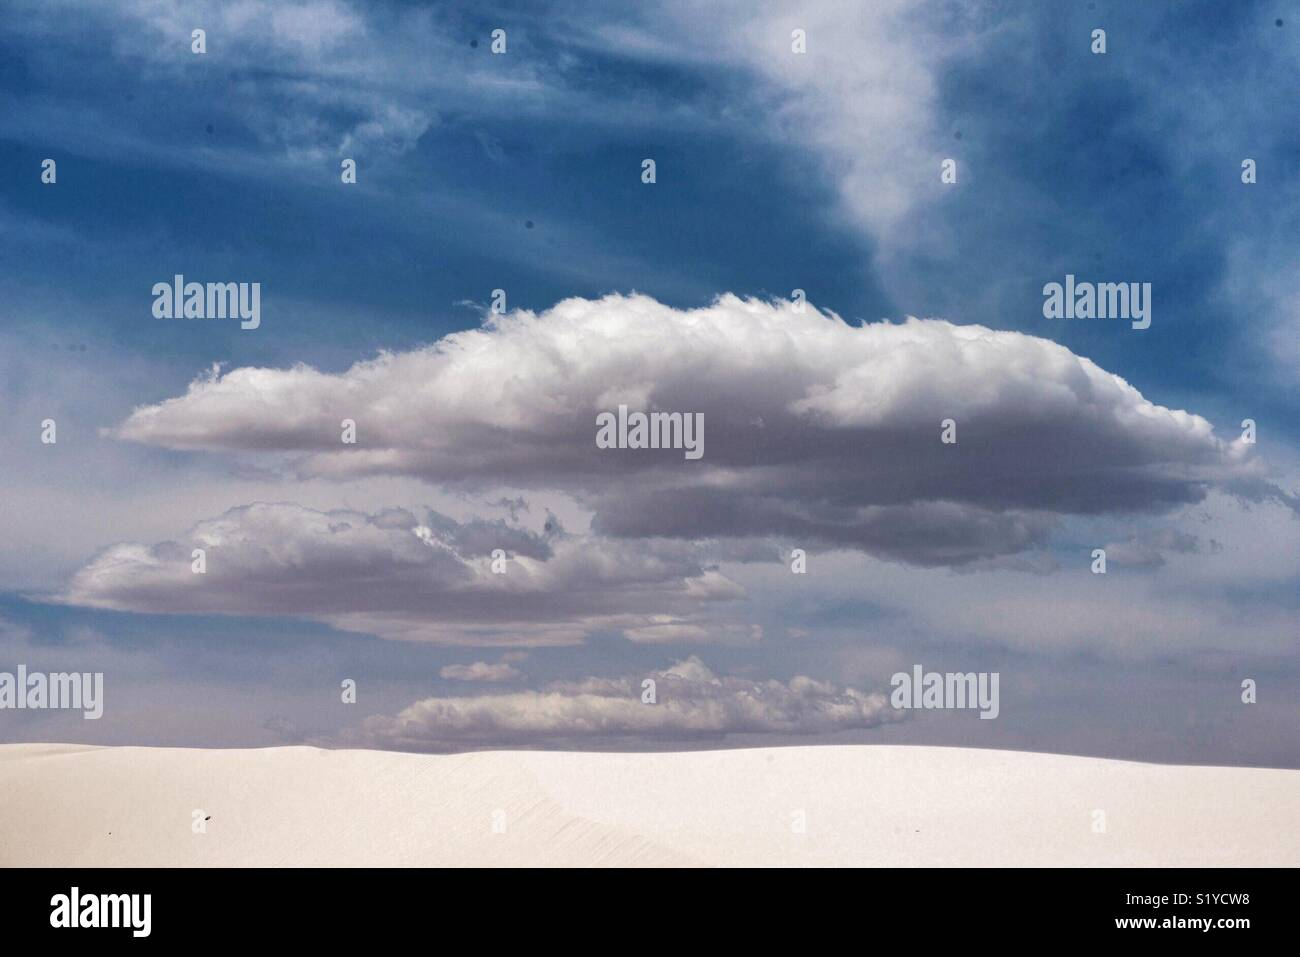 Clouds over White Sands, New Mexico - Stock Image